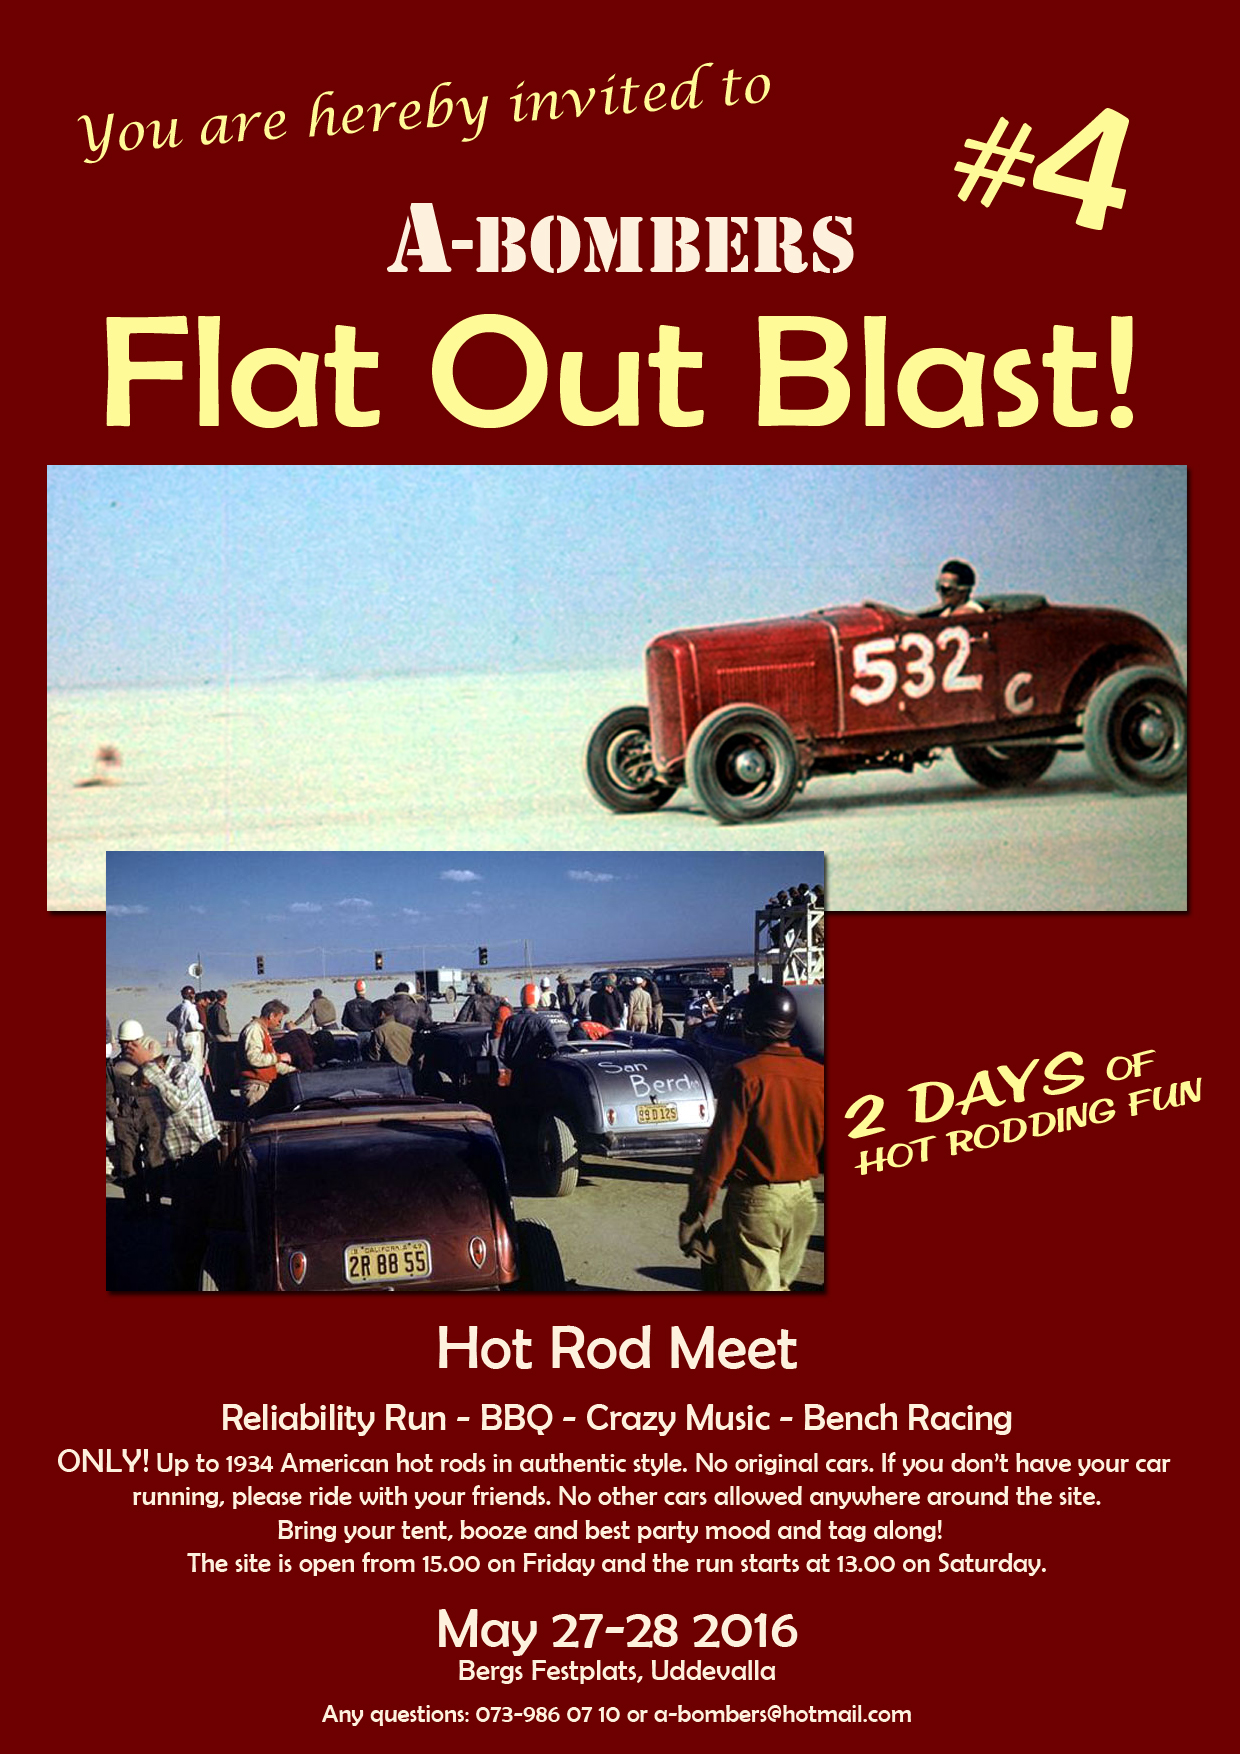 This is a event you can't miss if you are into real traditional hot rods.  Remember: ONLY! Up to 1934 American hot rods in authentic style. No original cars. If you don't have your ca running, please ride with your friend. No other cars allowed anywhere around the site. Bring your tent, booze and best party mood and tag along! The site is open form 15.00 ib Friday and the run starts at 13.00 on Saturday. This is a meet where you participate with your car, it is not a event for visitors that just want to check out cars or just to party. This is going to be a blast! See your there!